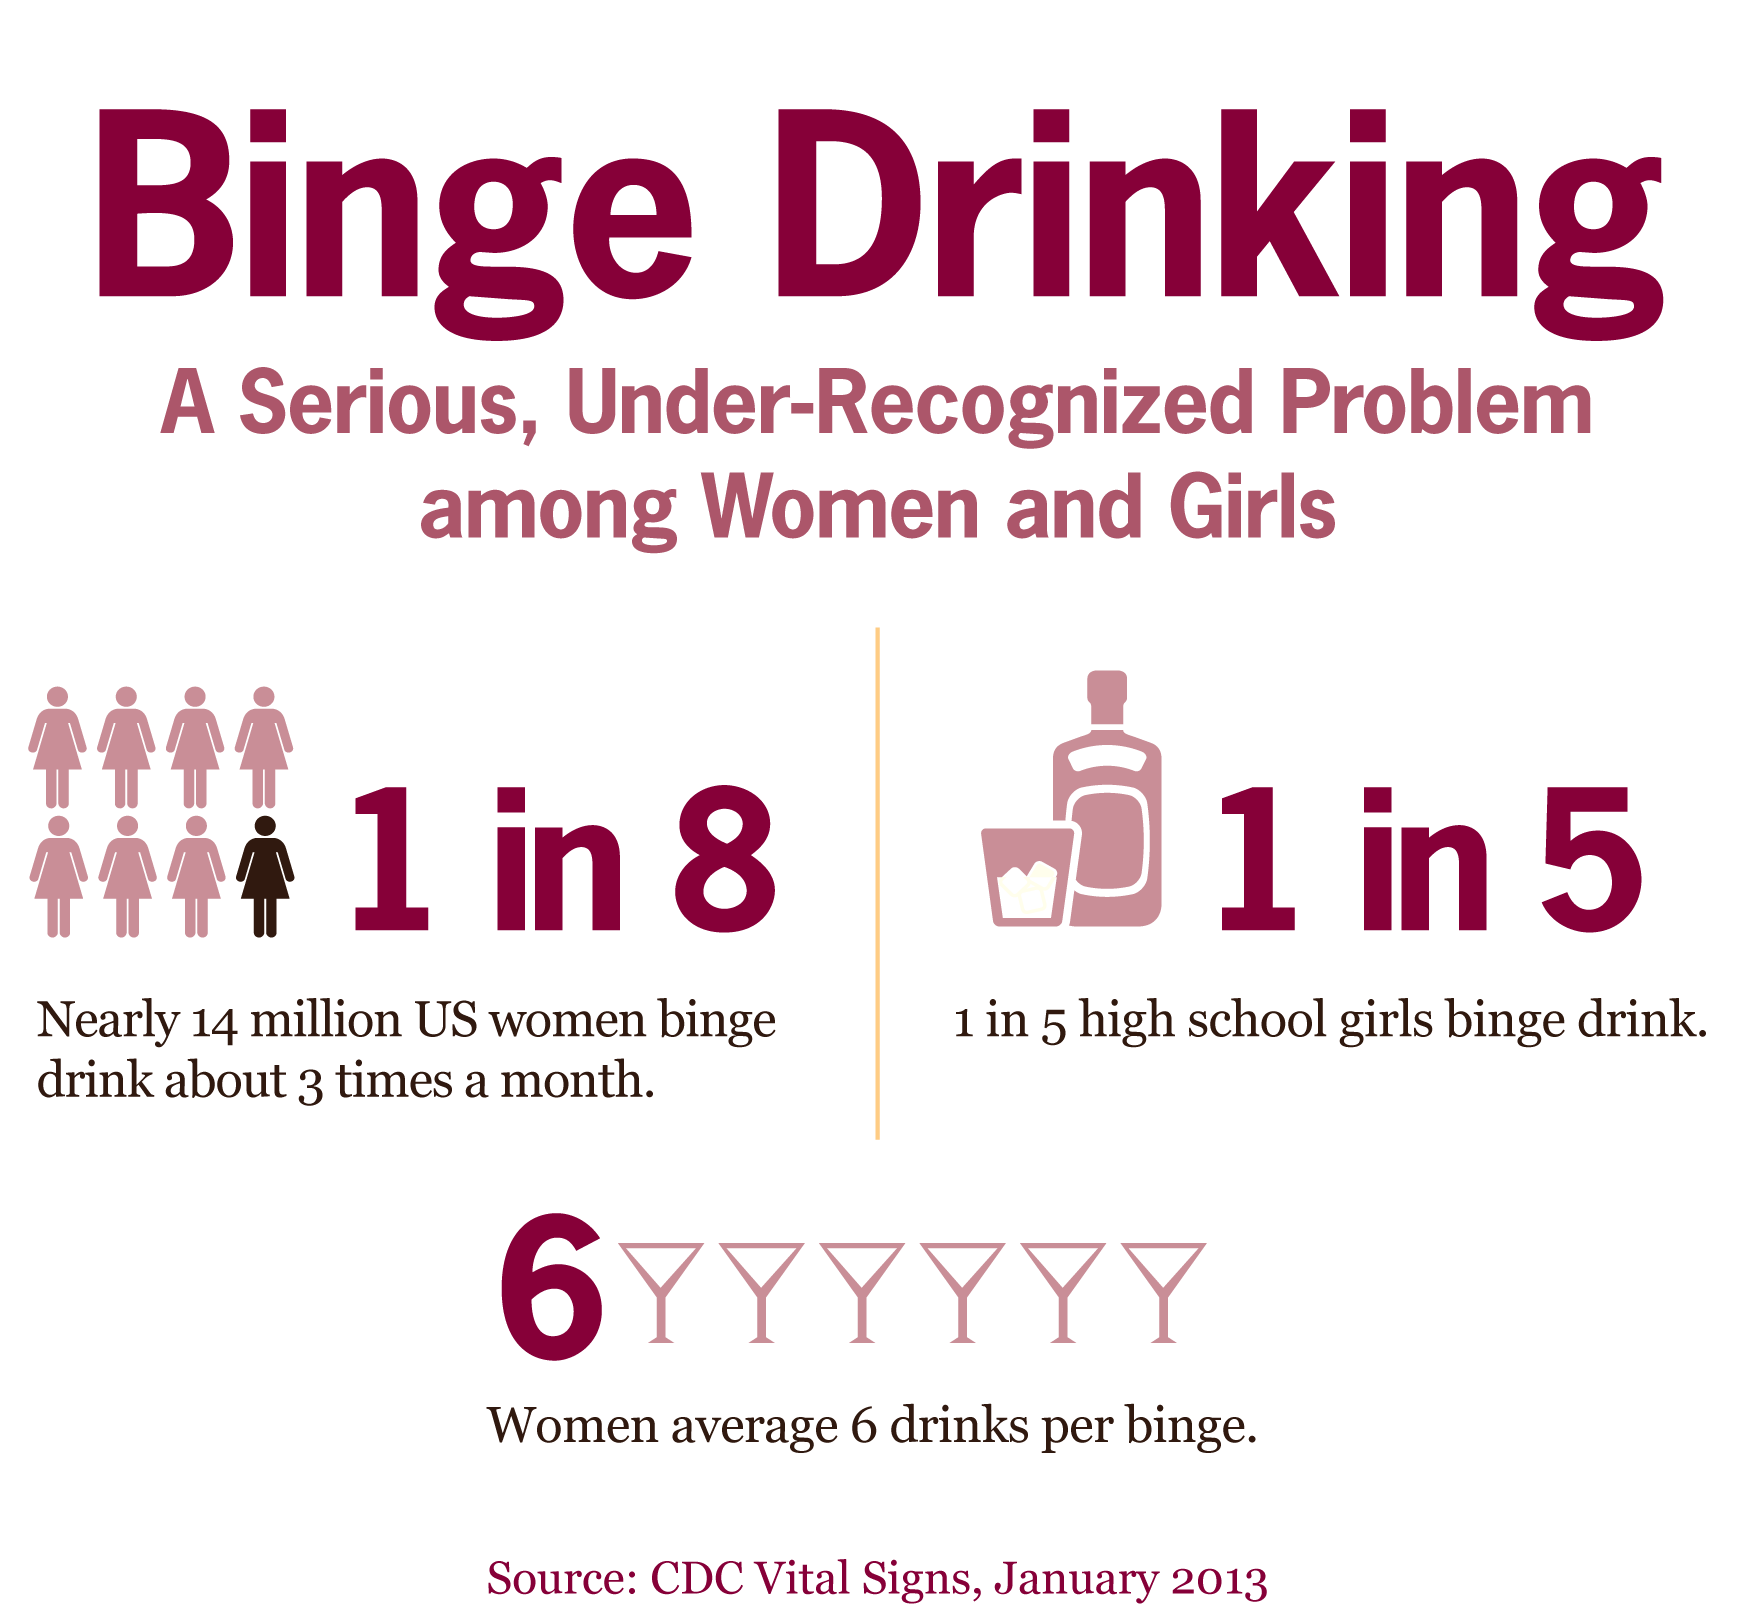 Binge drinking is more common among women, particularly young ones, than you might have expected.